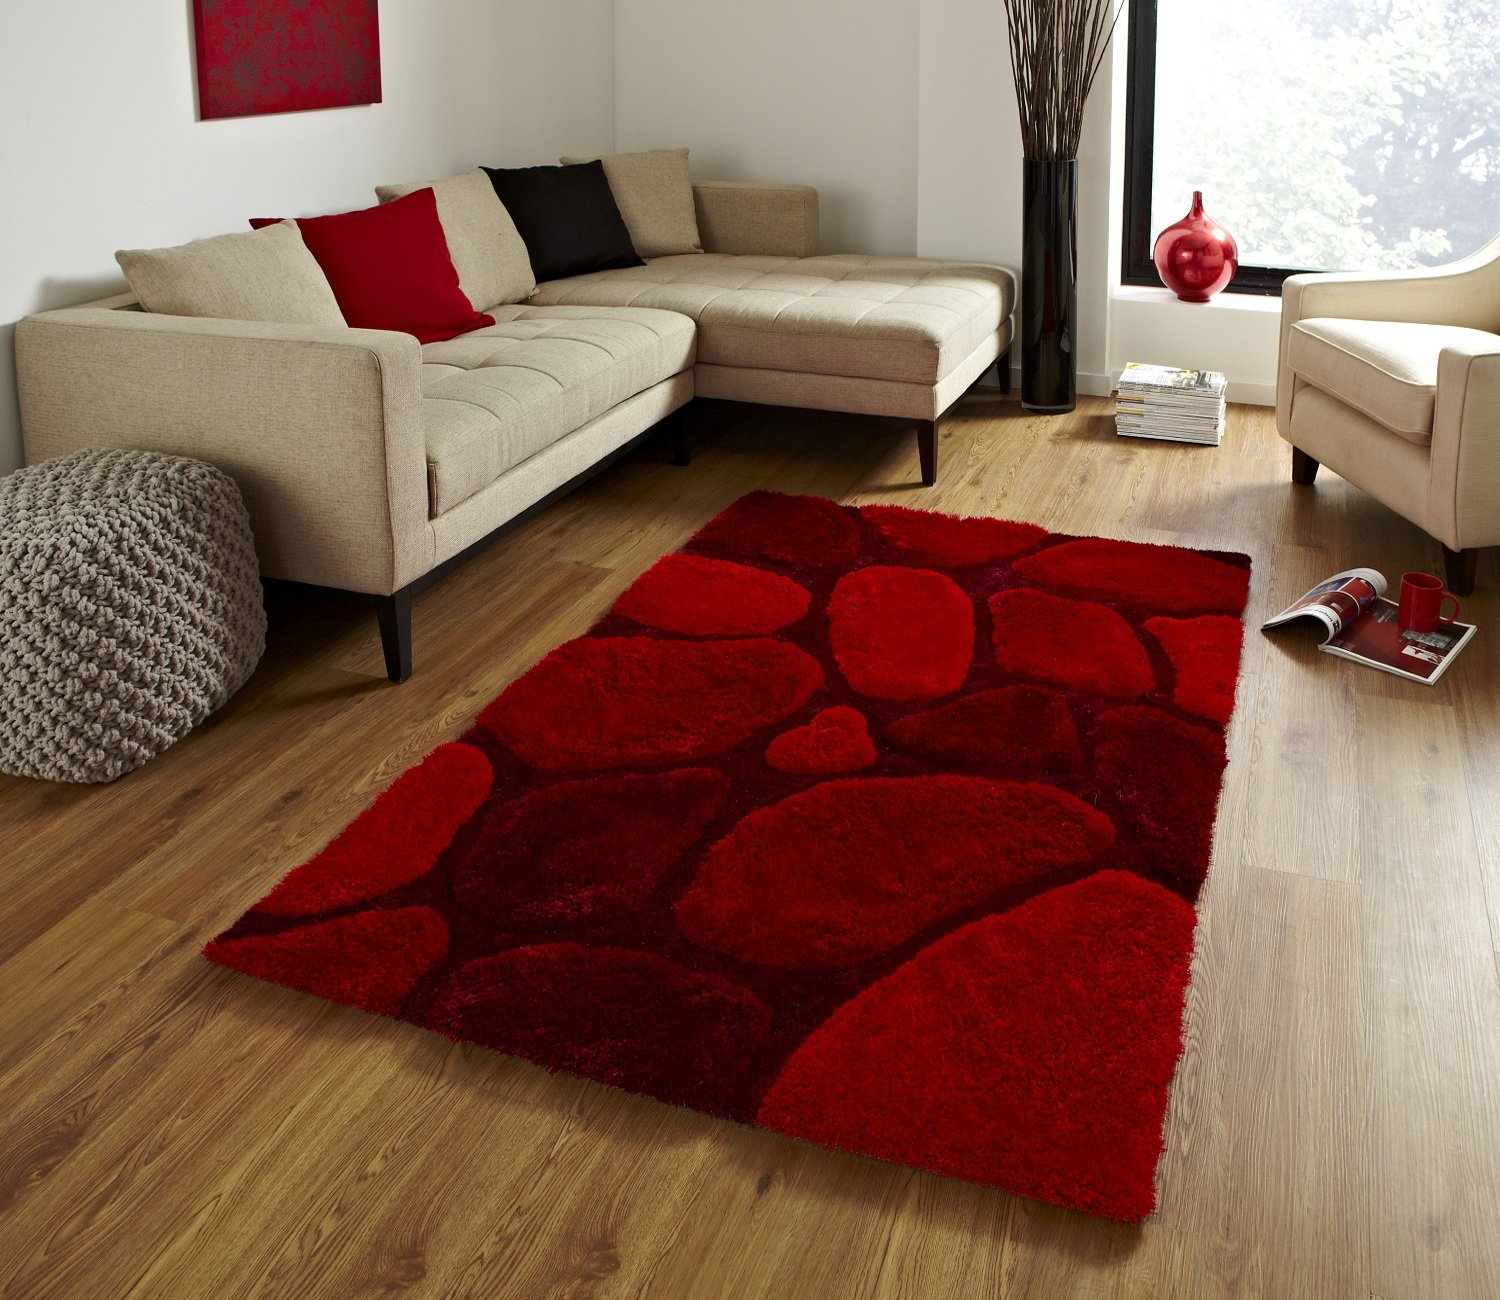 red rugs for living room pin images of dreamweavers theyogablog kootation 18115